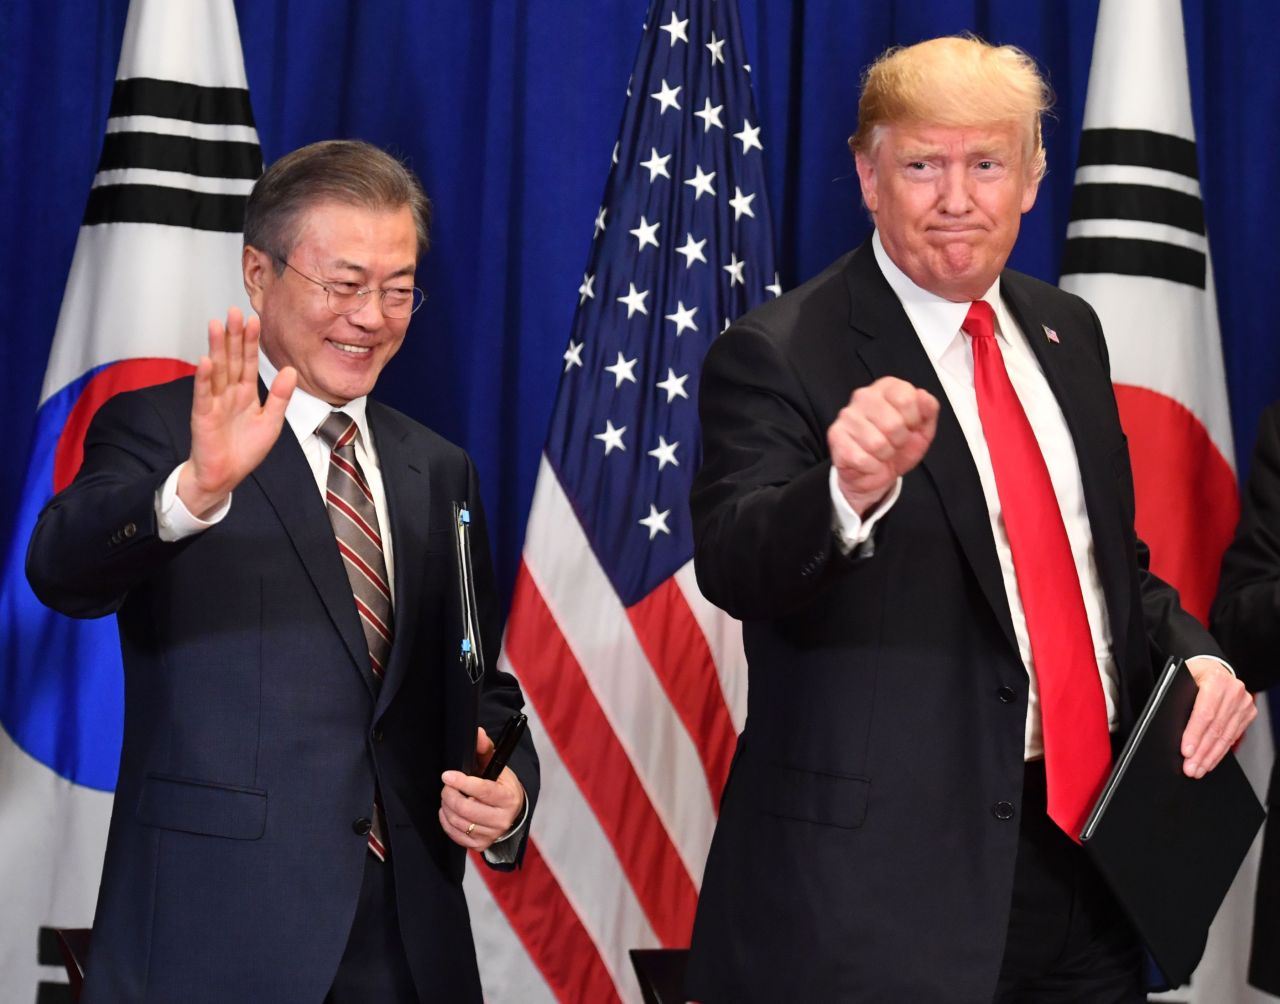 President Donald Trump will visit South Korea in June to meet with his counterpart Moon Jae-in over their efforts to persuade North Korea to scrap its nuclear weapons arsenal, the White House said May 15, 2019. (AFP)